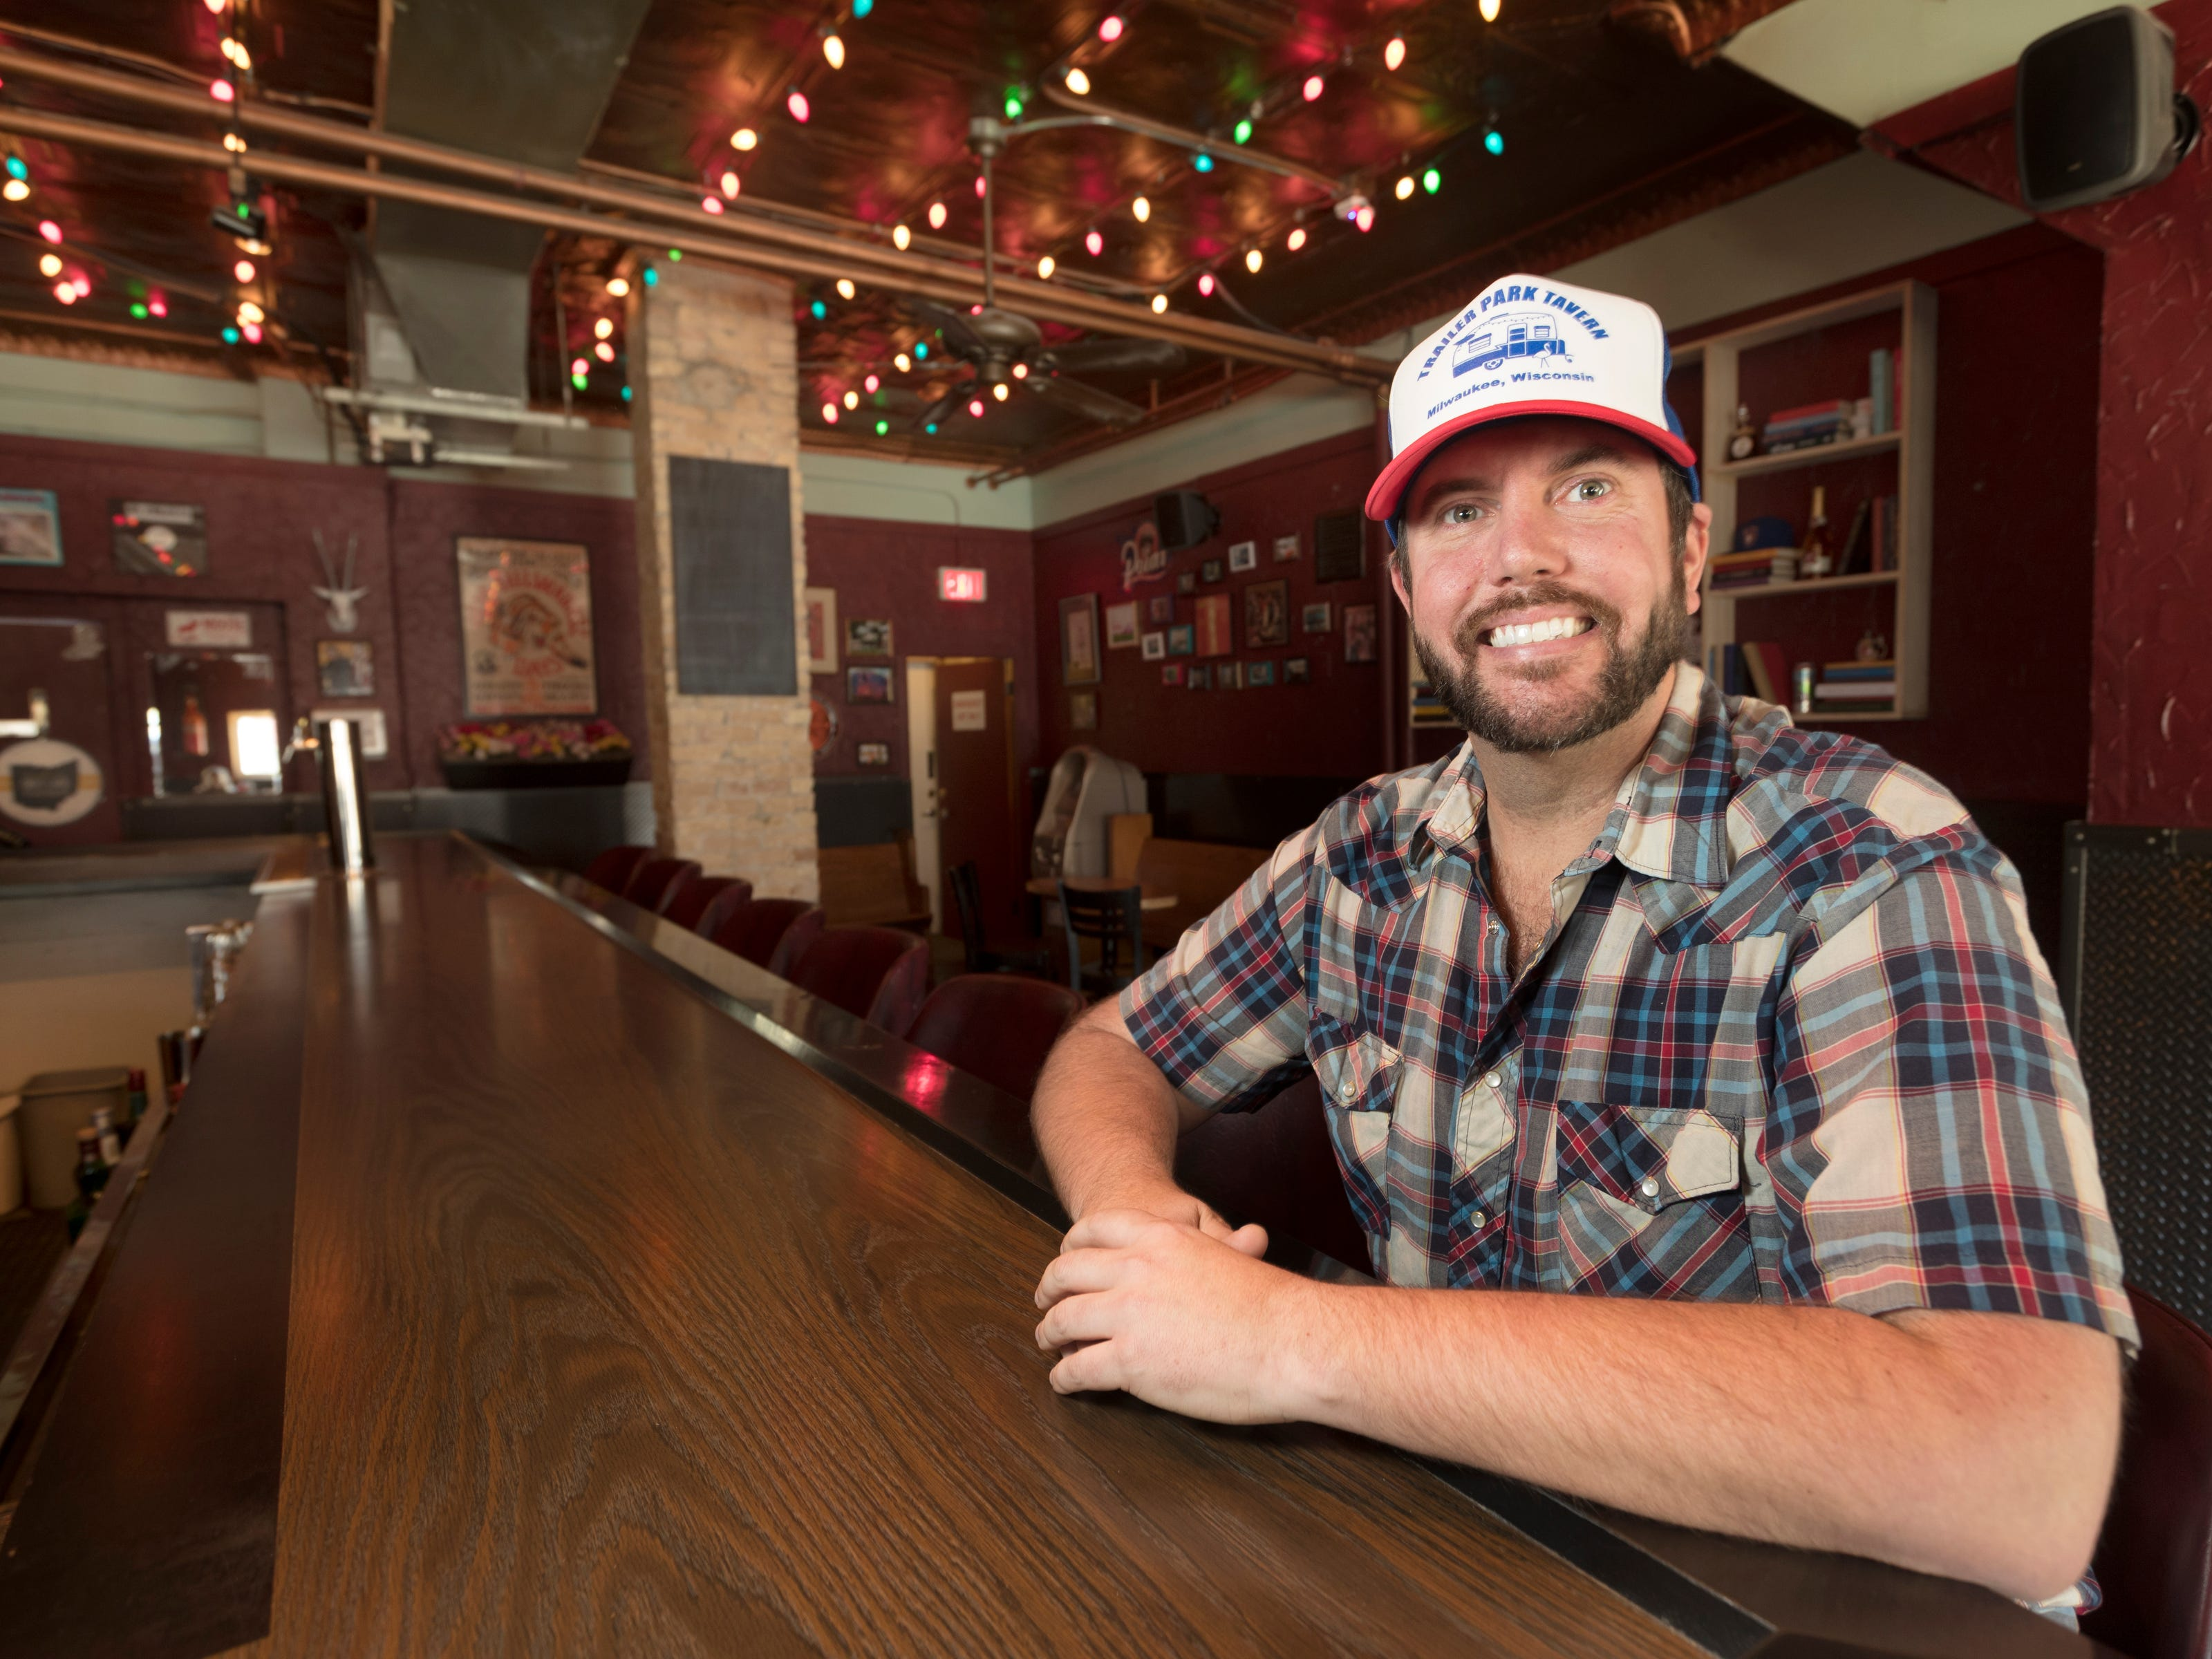 Jordon Bledsoe is shown Tuesday, April 9, 2019, at his soon-to-open Trailer Park Tavern, 2989 S. Kinnickinnic Ave. in Milwaukee, Wis. The bar is to open in May.